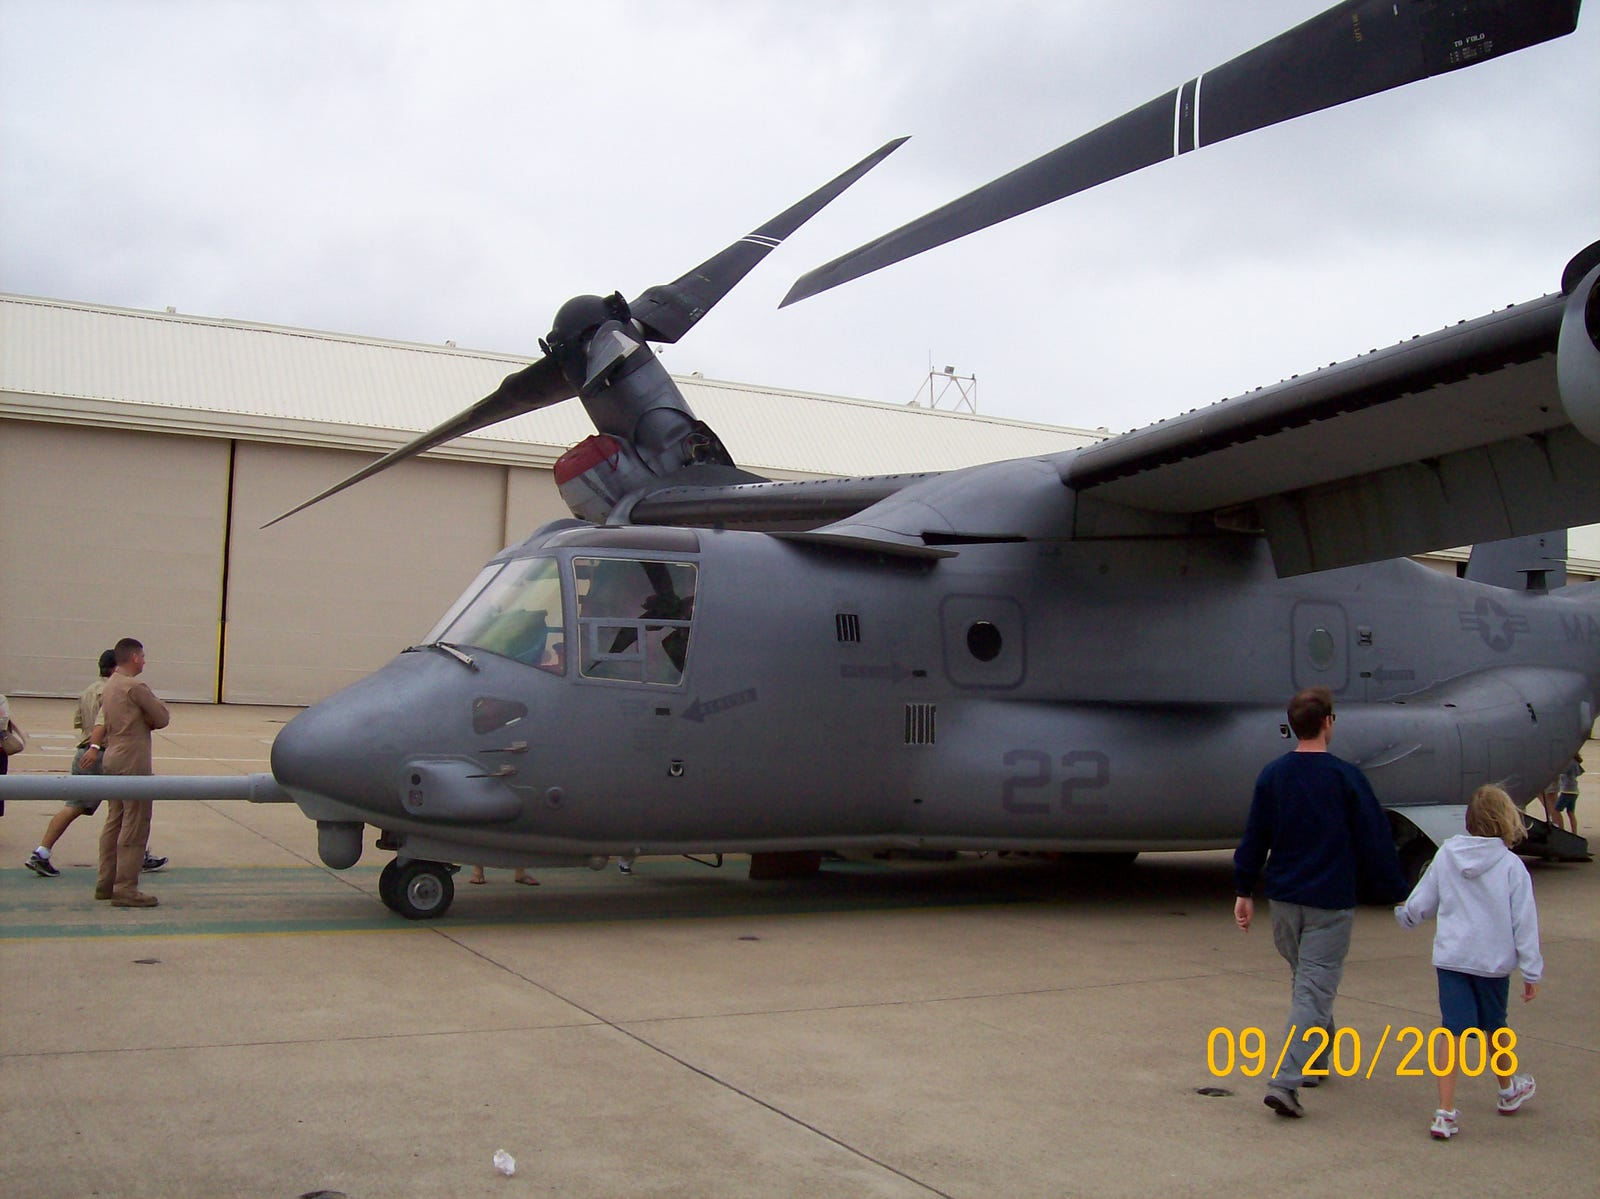 An MV-22B Osprey tiltrotor, which replaced the CH-46 in Marine service.